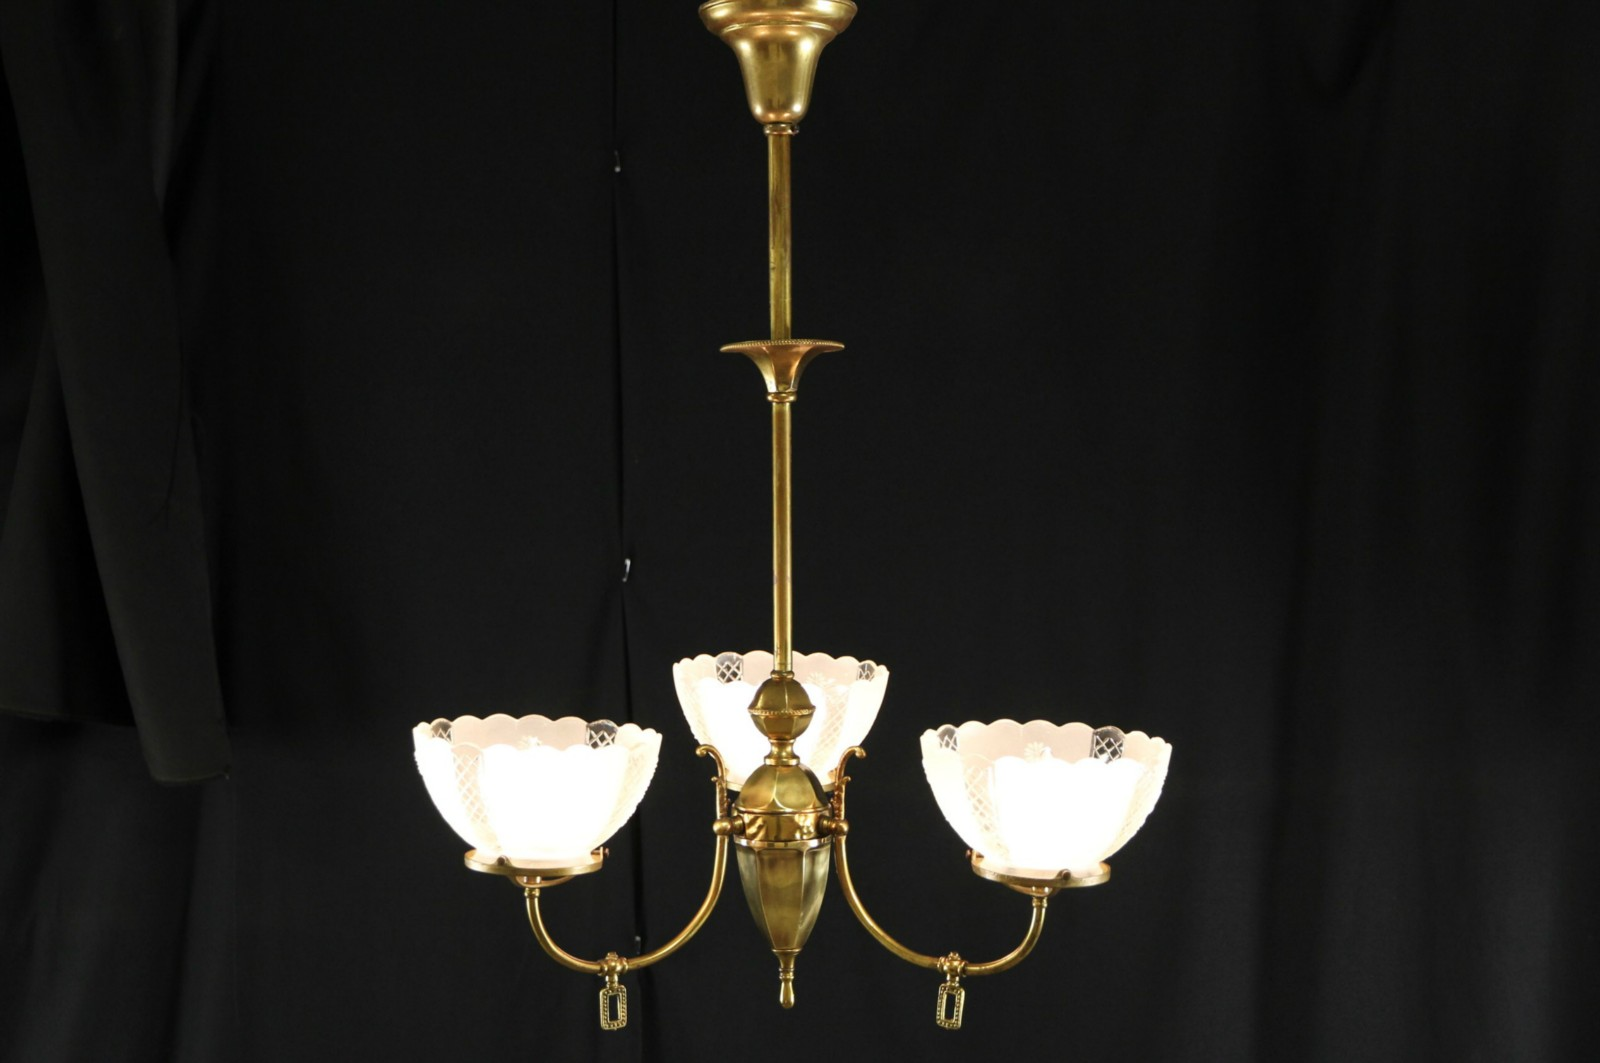 Sold victorian 1890s antique 3 light gas chandelier electrified victorian 1890s antique 3 light gas chandelier electrified shades arubaitofo Images